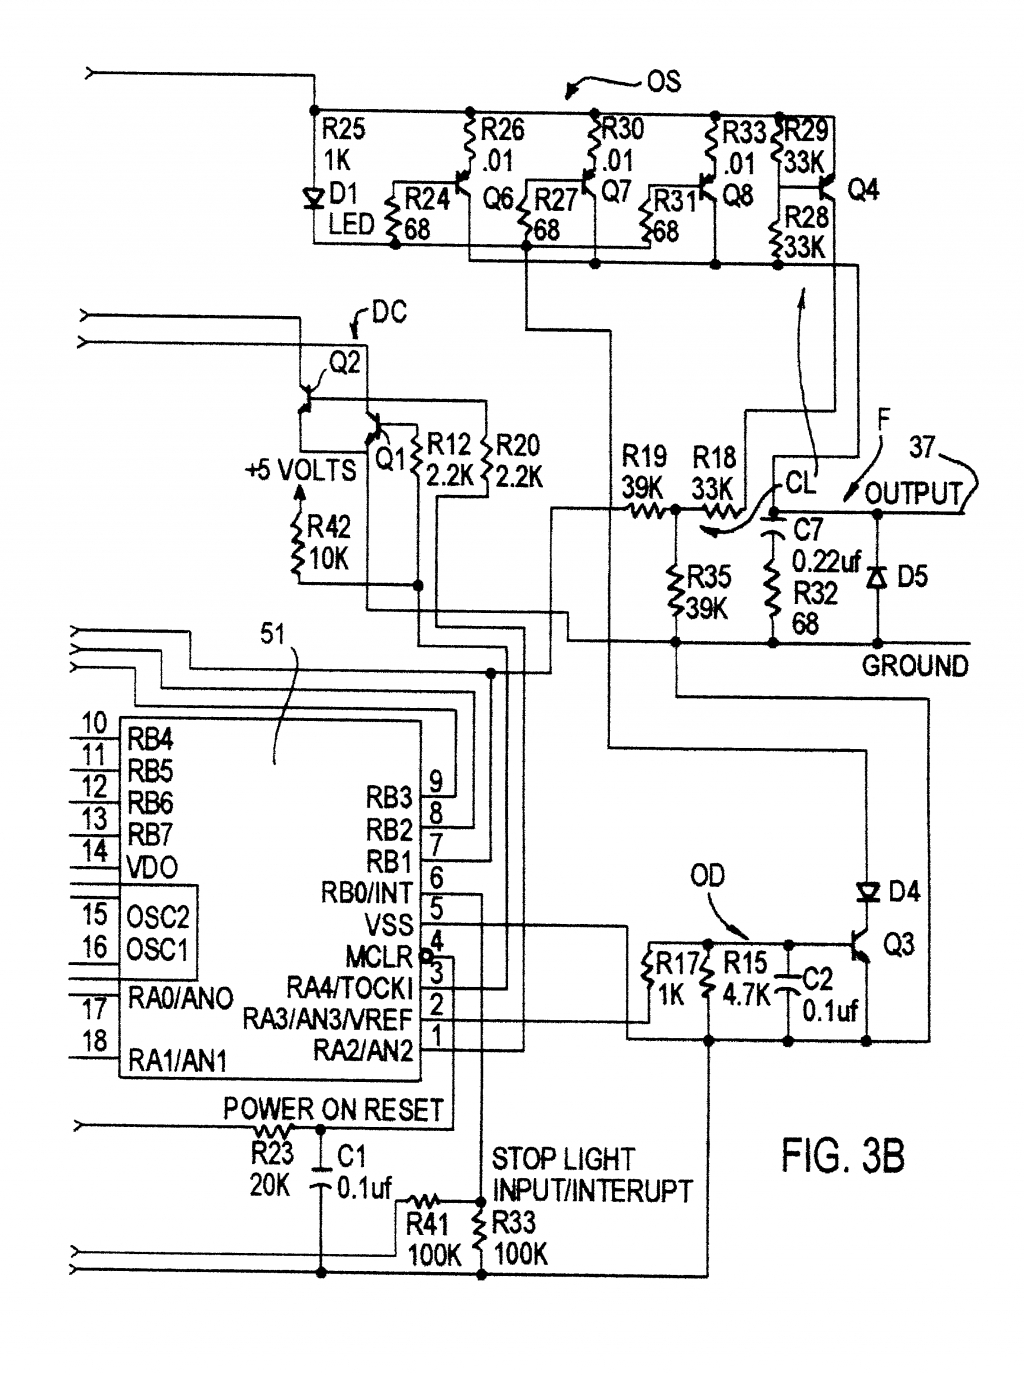 1991 ford f250 wiring diagram pdf